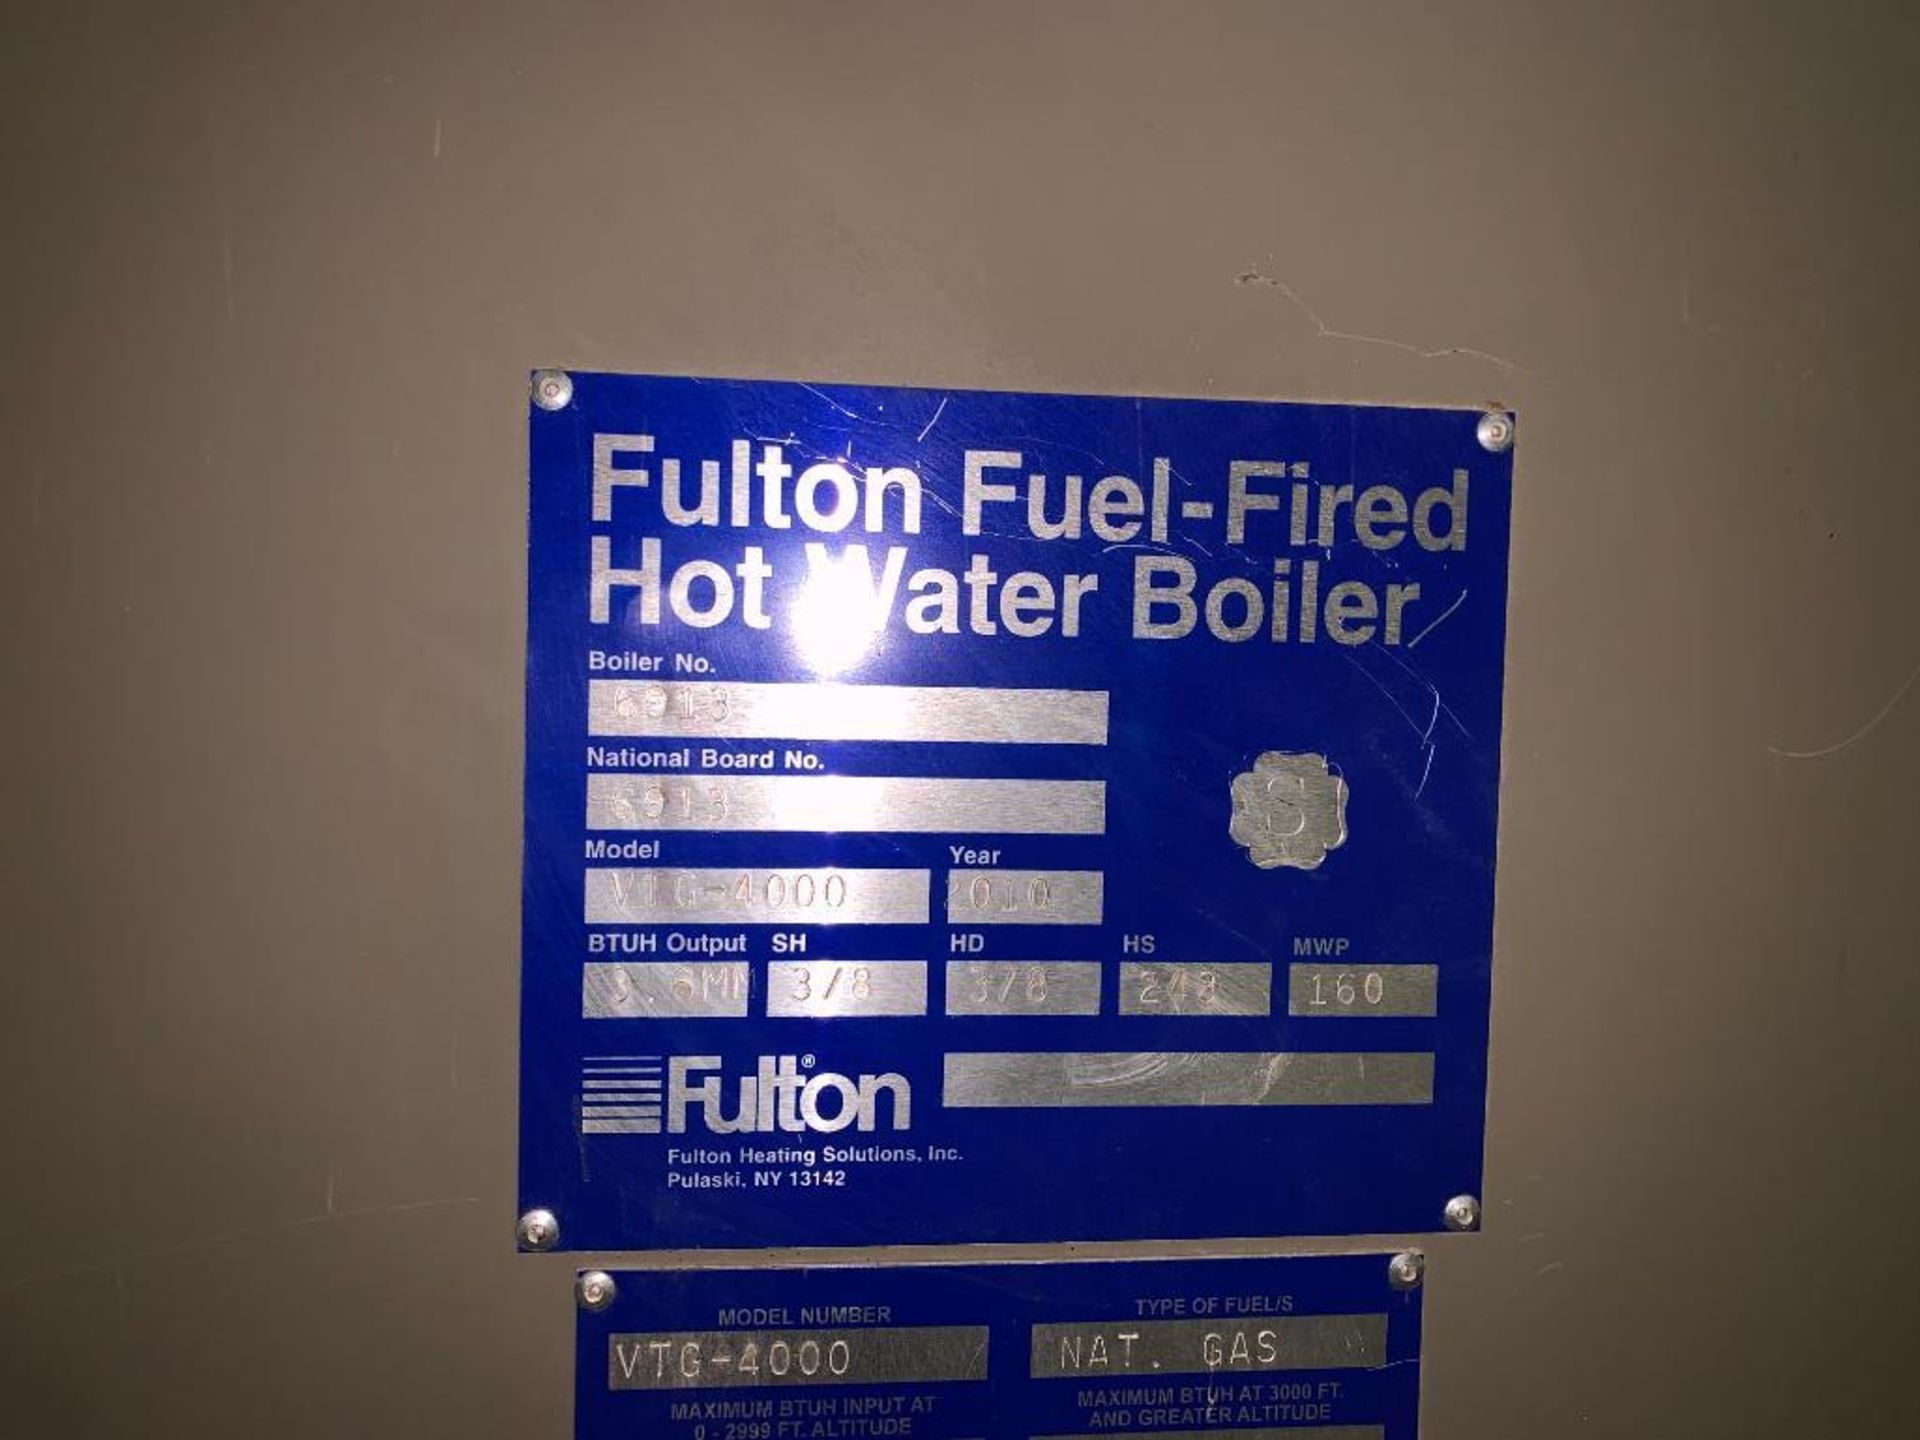 2010 Fulton fuel fired hot water boiler - Image 15 of 15